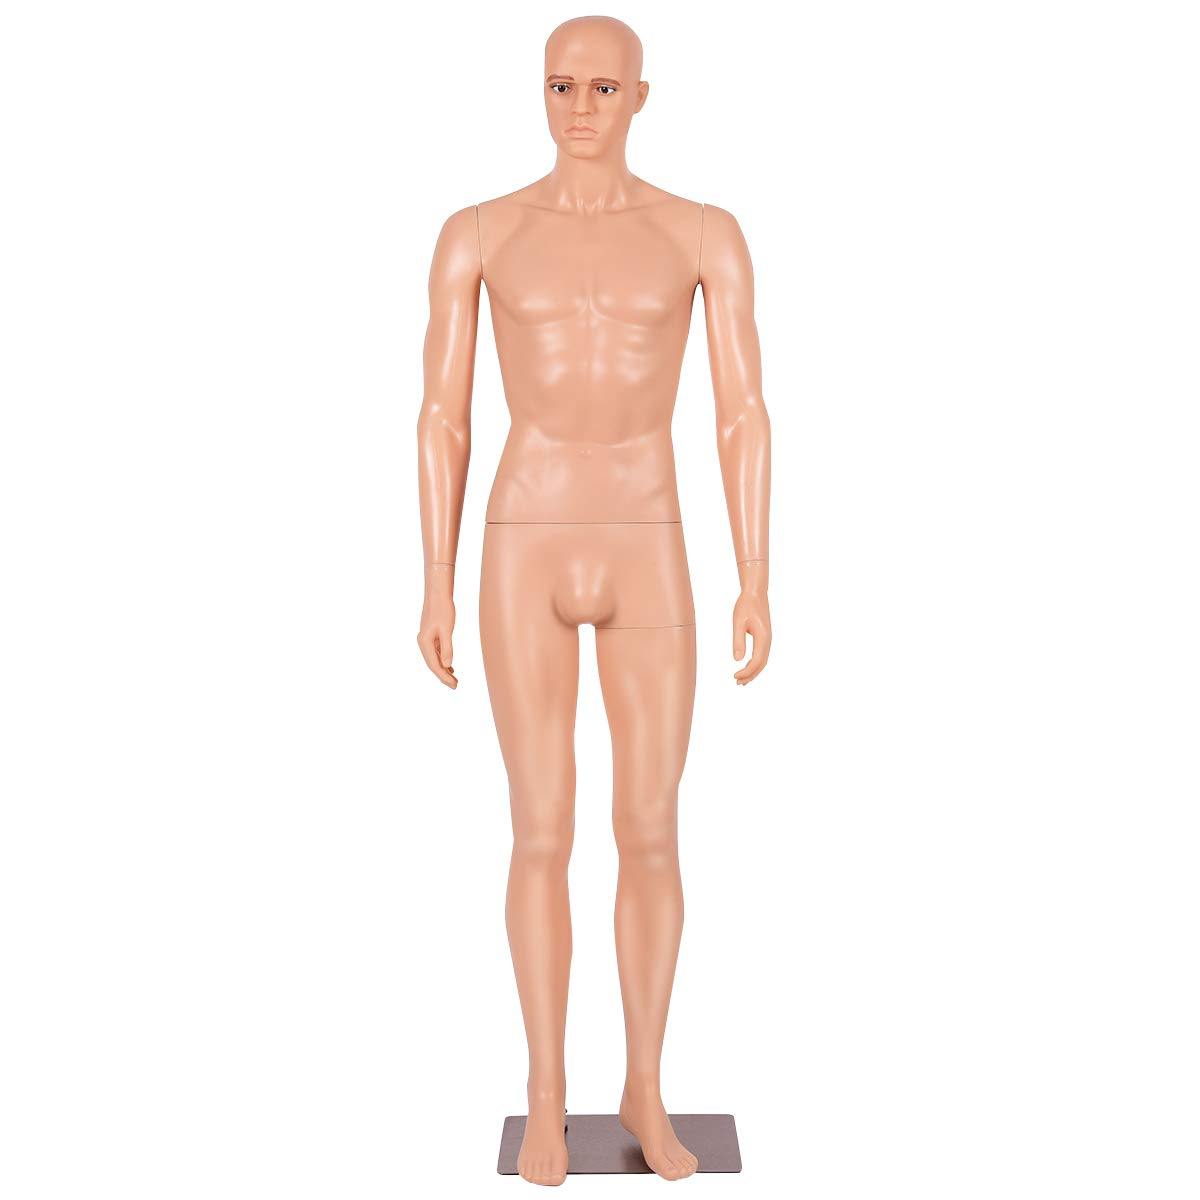 Giantex 6 FT Adjustable Male Mannequin Make-up Manikin Metal Stand Plastic Full Body Realistic by Giantex